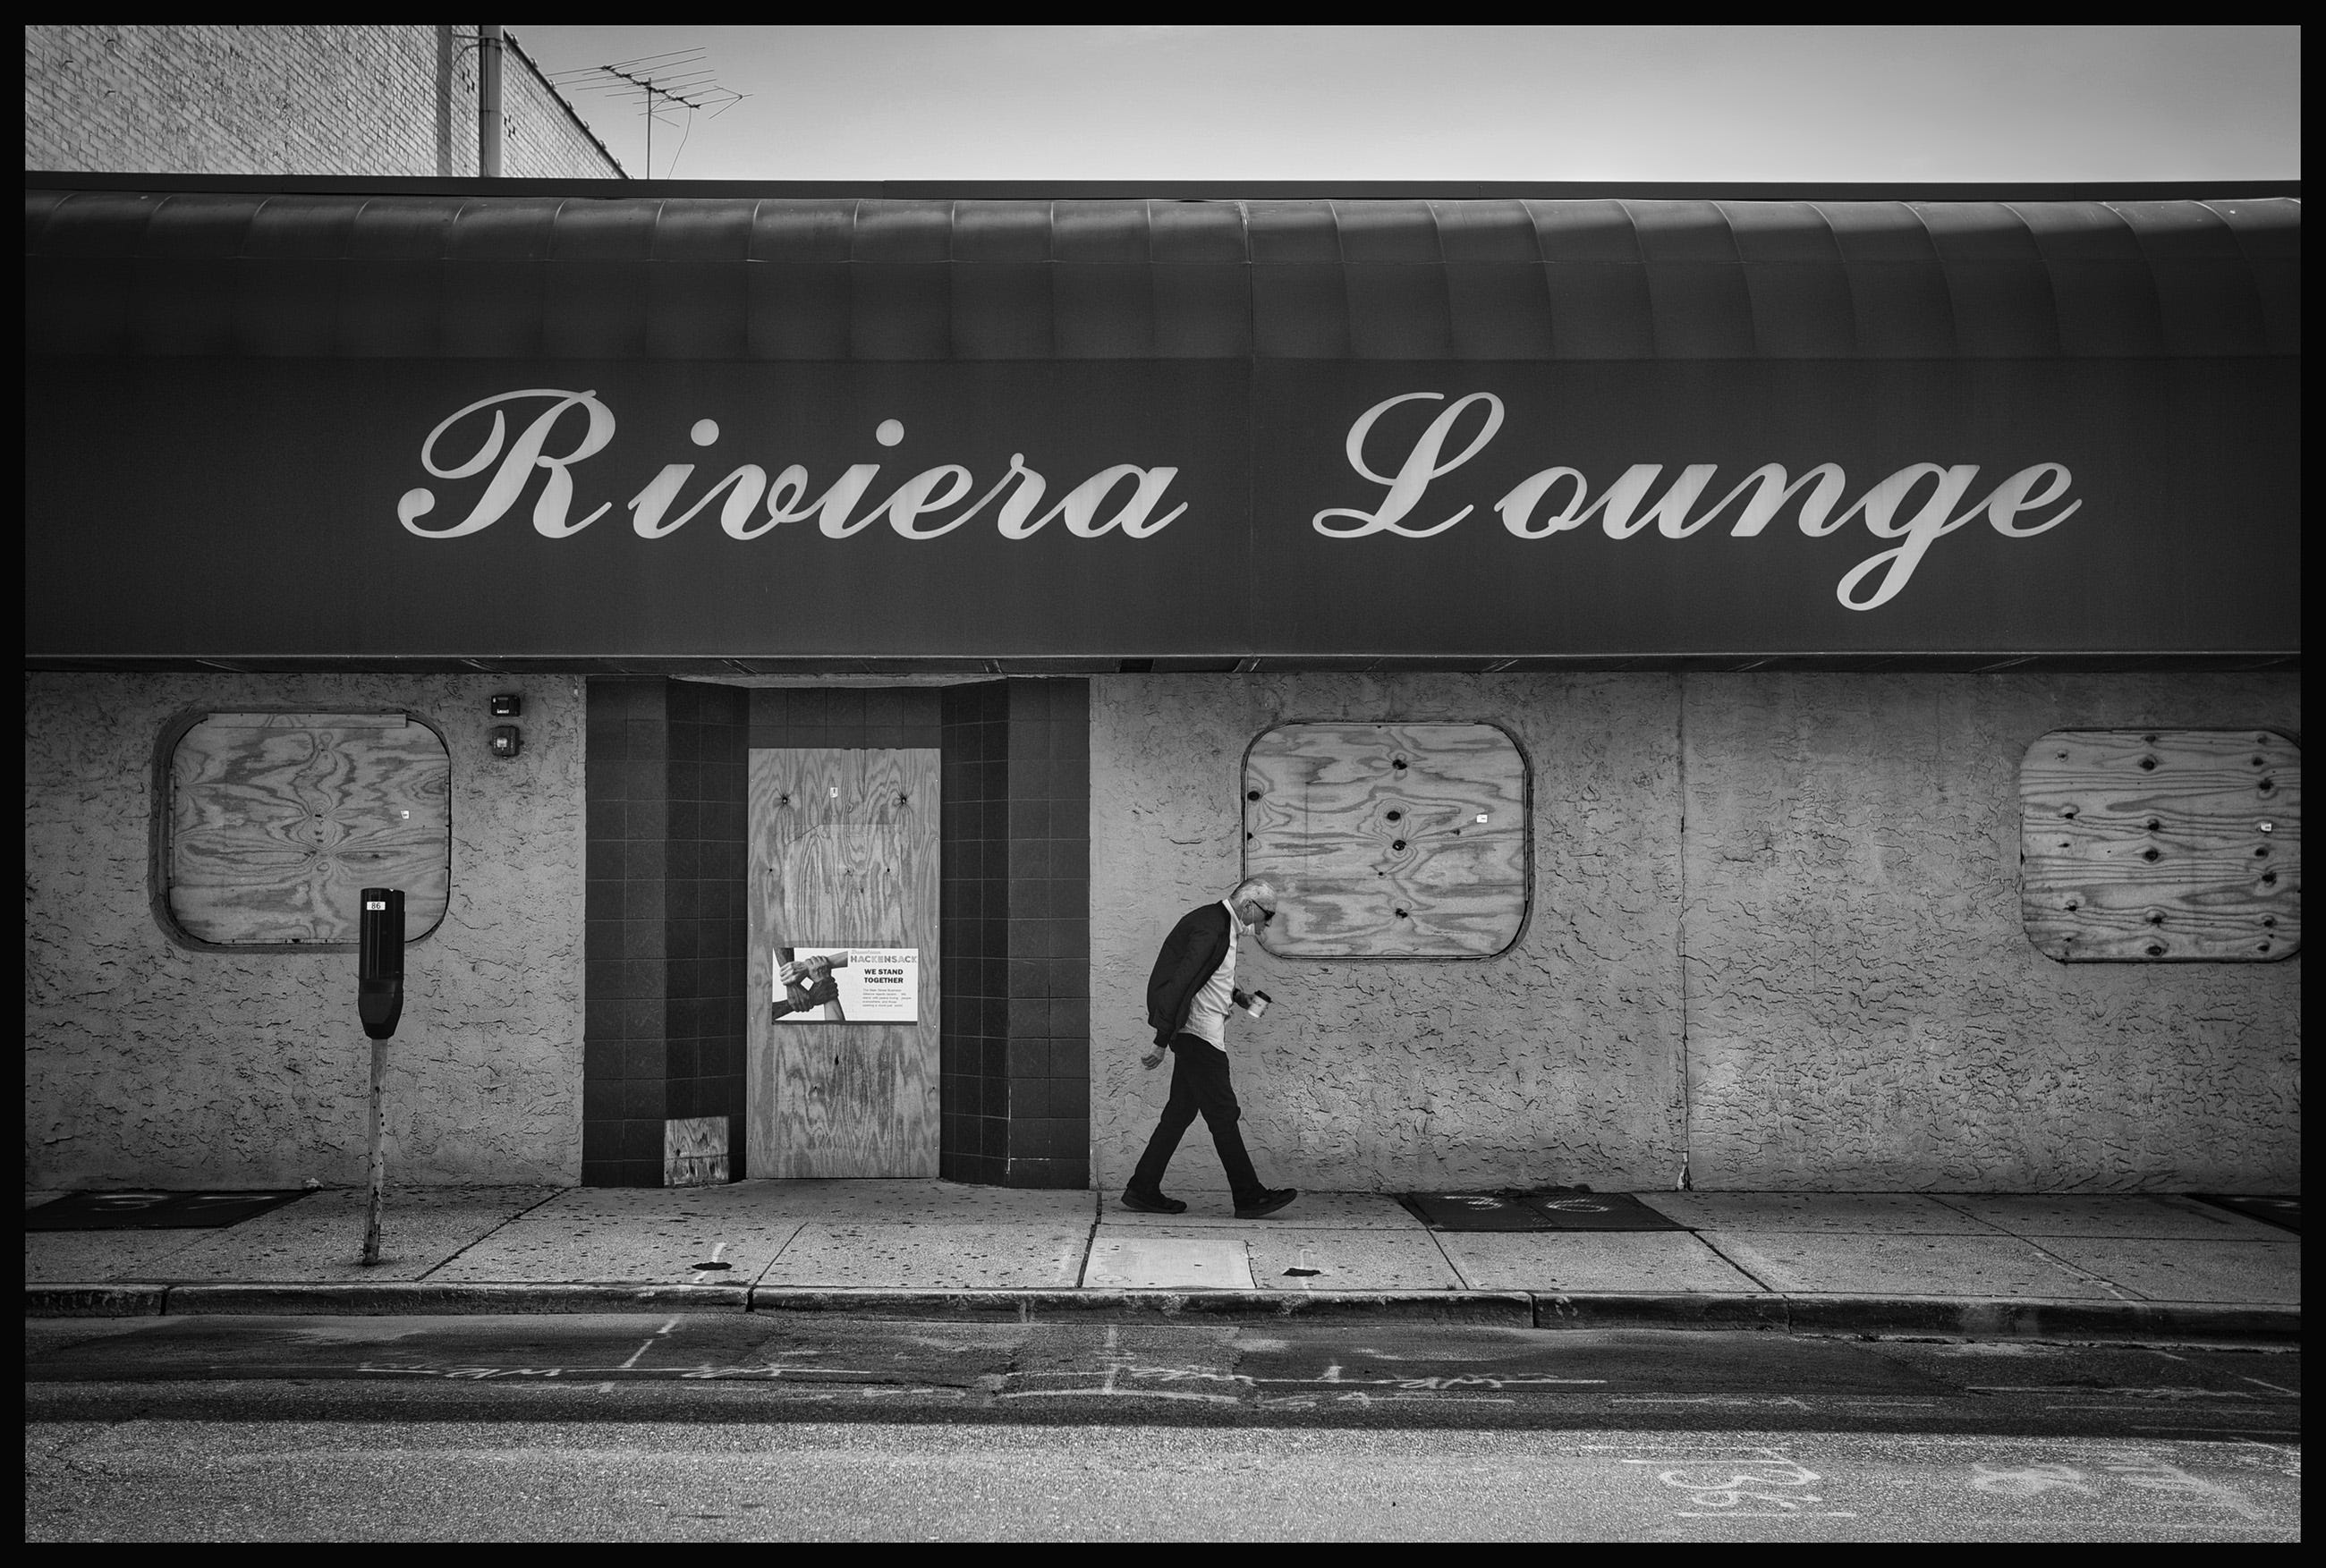 A man walks past the closed Riviera Lounge located along Main Street in Hackensack, photographed on October 1,2020.